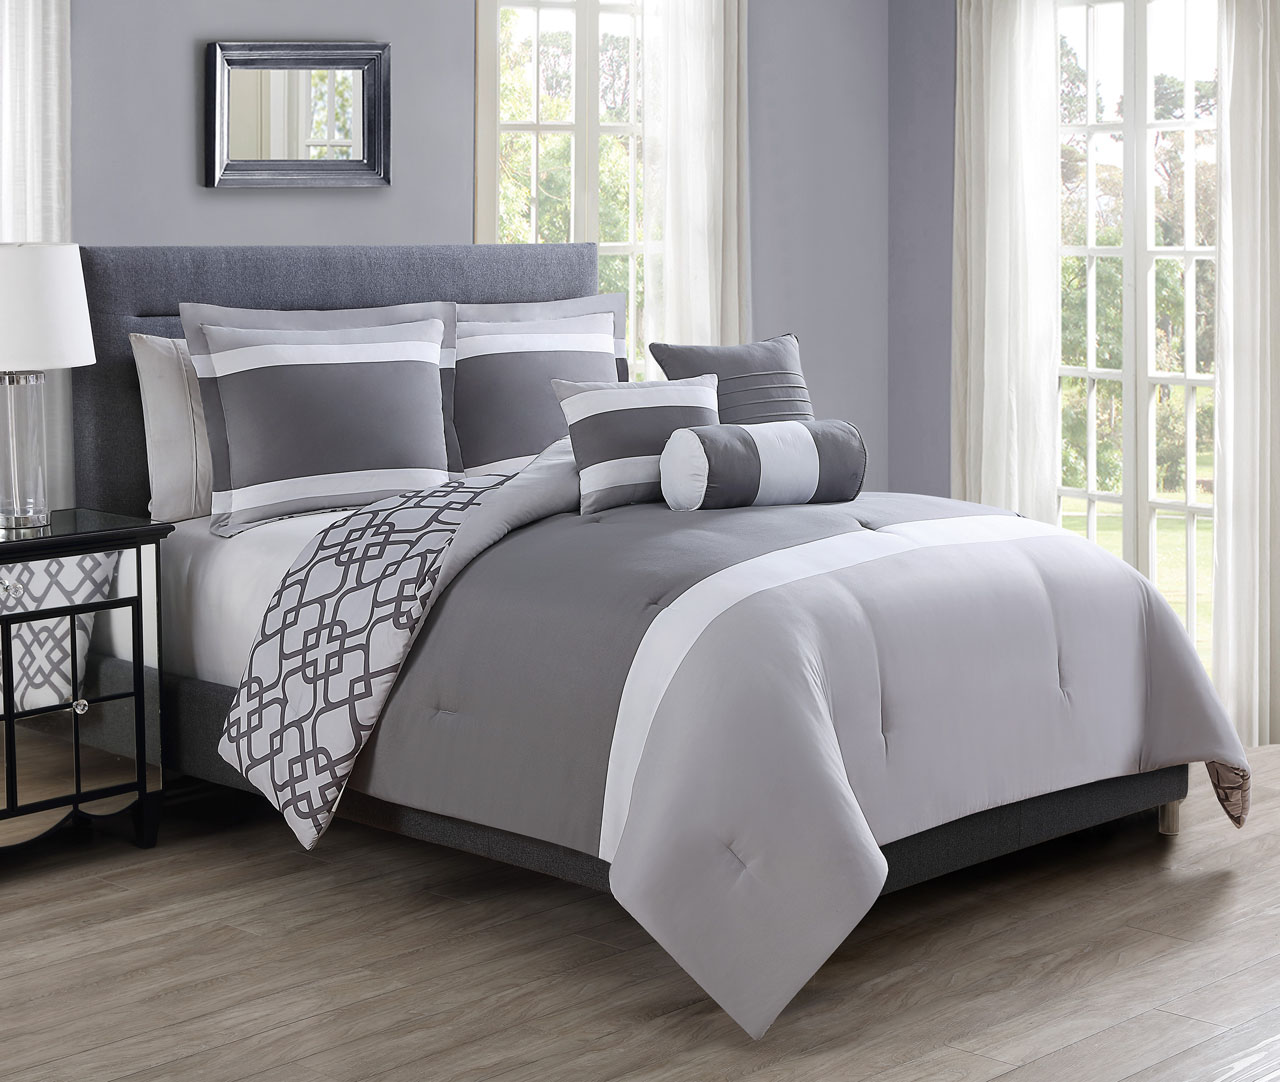 waterford farrah latest products set aqua angle piece comforter bedding reversible sets face